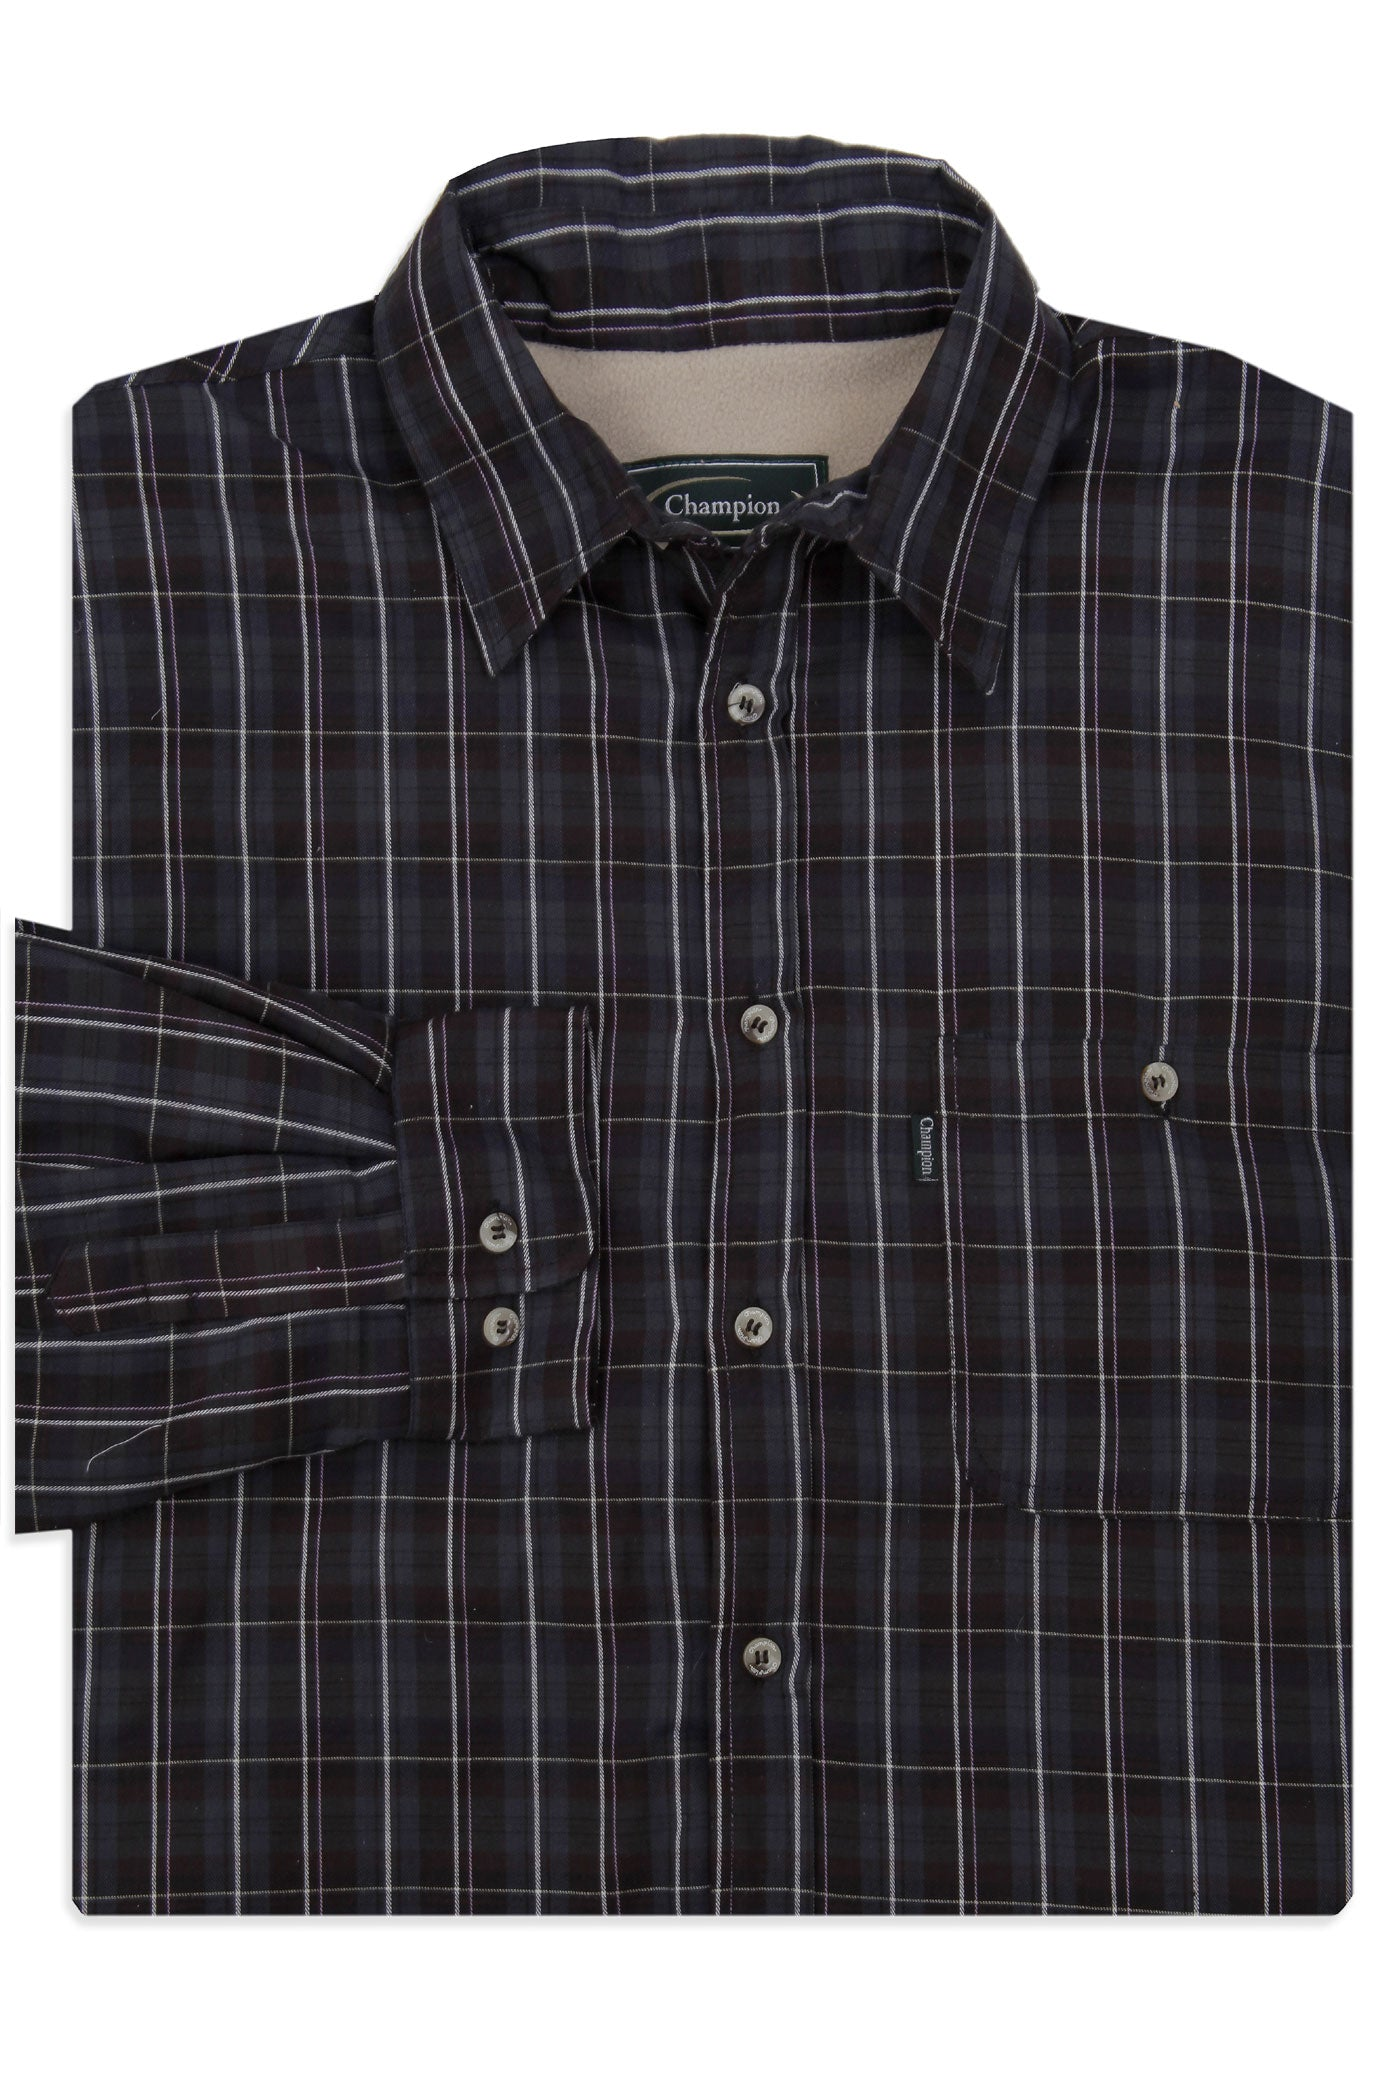 shirt folded in navy tartan Champion Sherborne Shirt Warm Lined Shirt  A country plaid check shirt with a micro fleece lining.